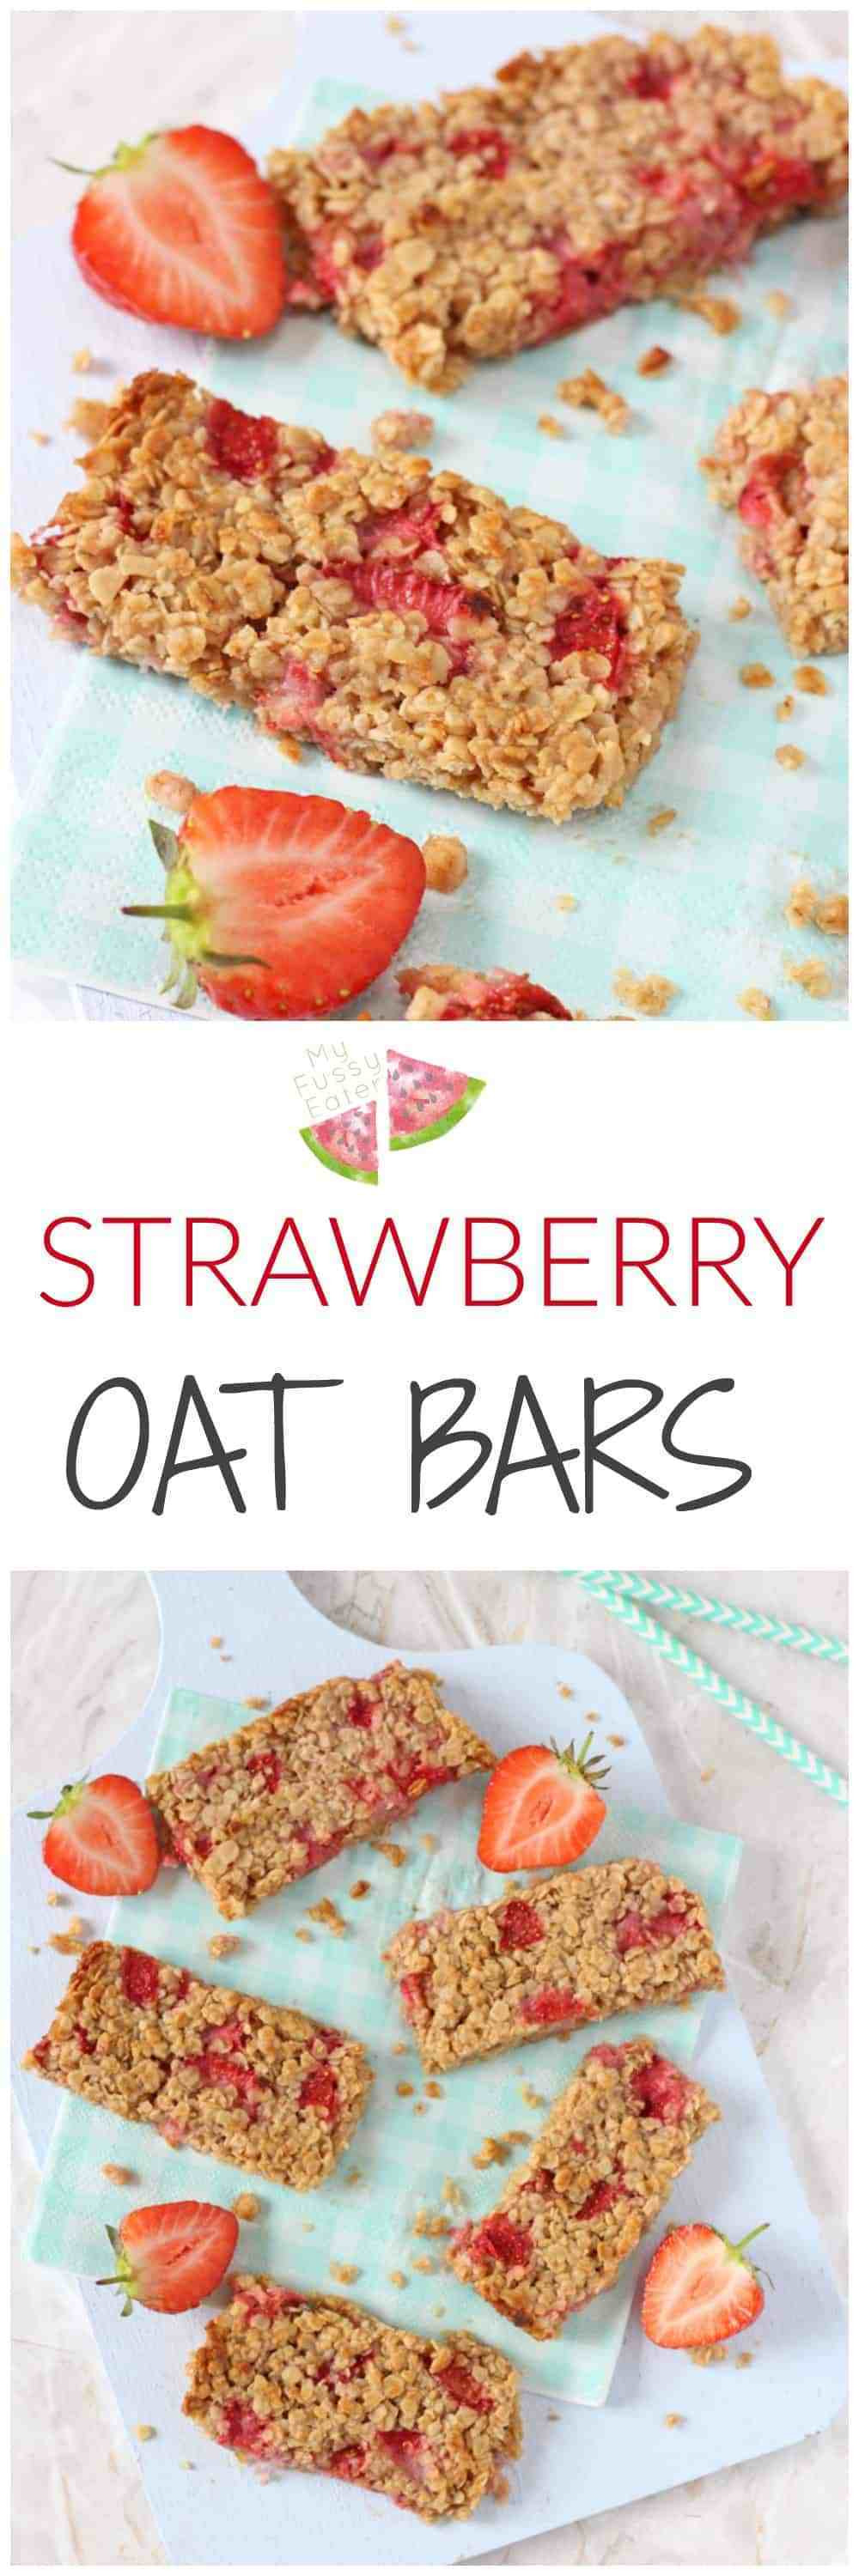 Healthy Delicious Snacks  Strawberry Oat Bars My Fussy Eater